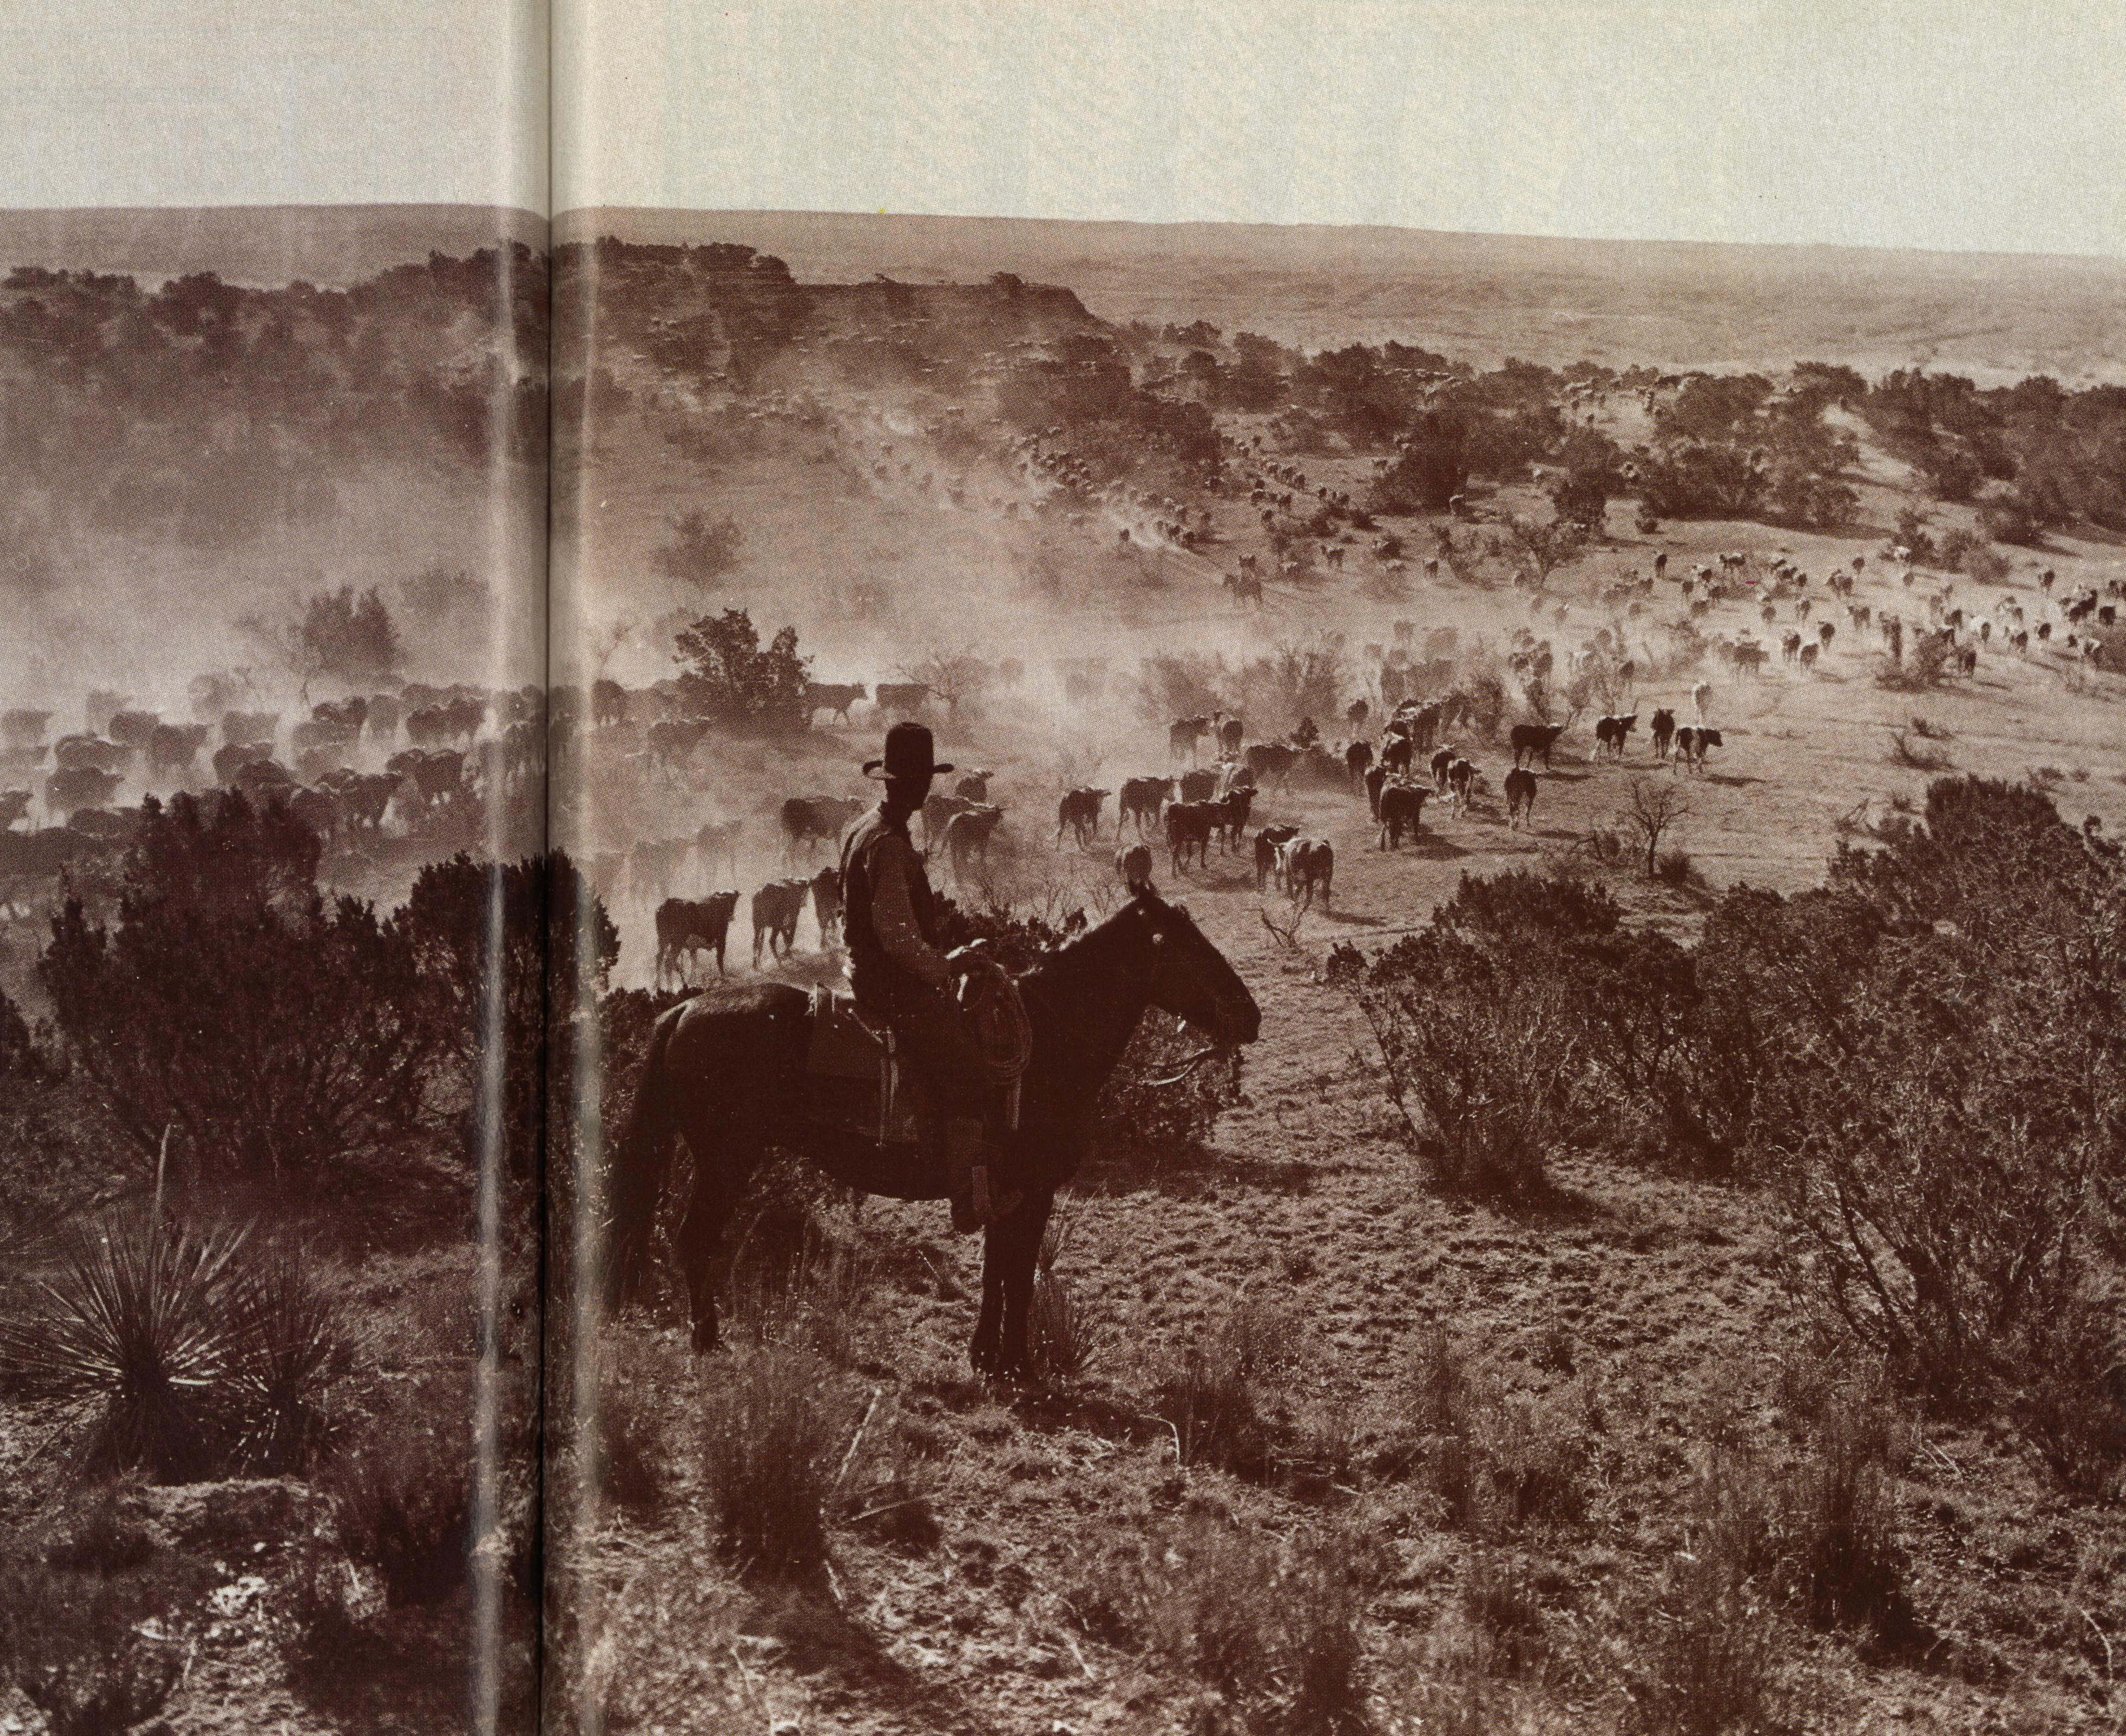 Their history was brief, but the trail drives live forever in the myths of the cowboy and the boundless West.